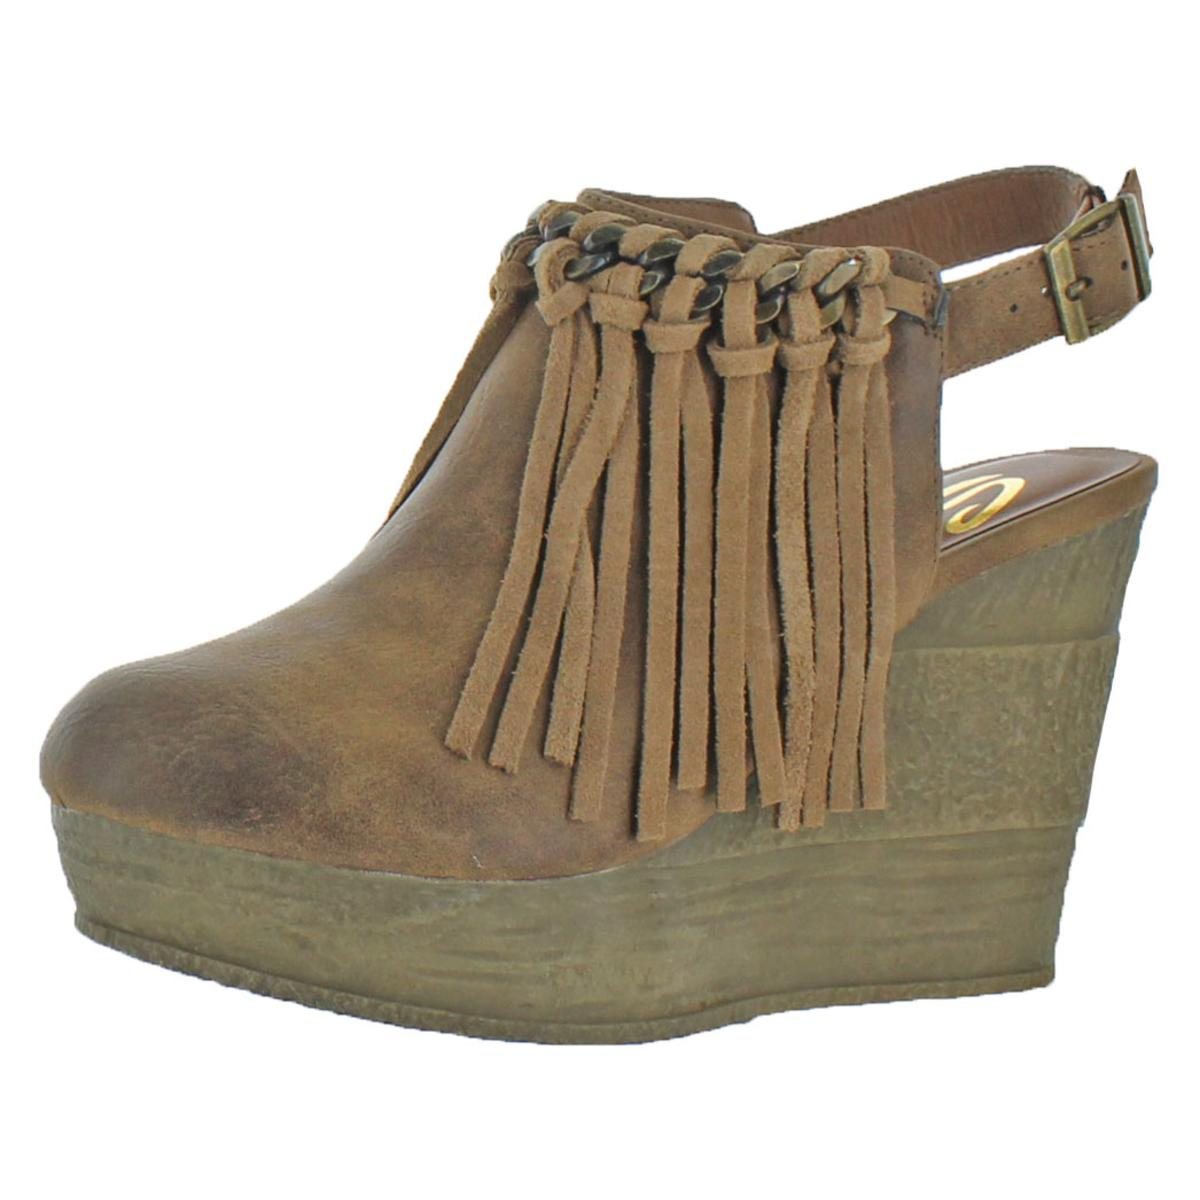 44285ced0e5 Sbicca Womens Allegretto Tan Fringe Wedge BOOTIES Shoes 7 Medium (b ...